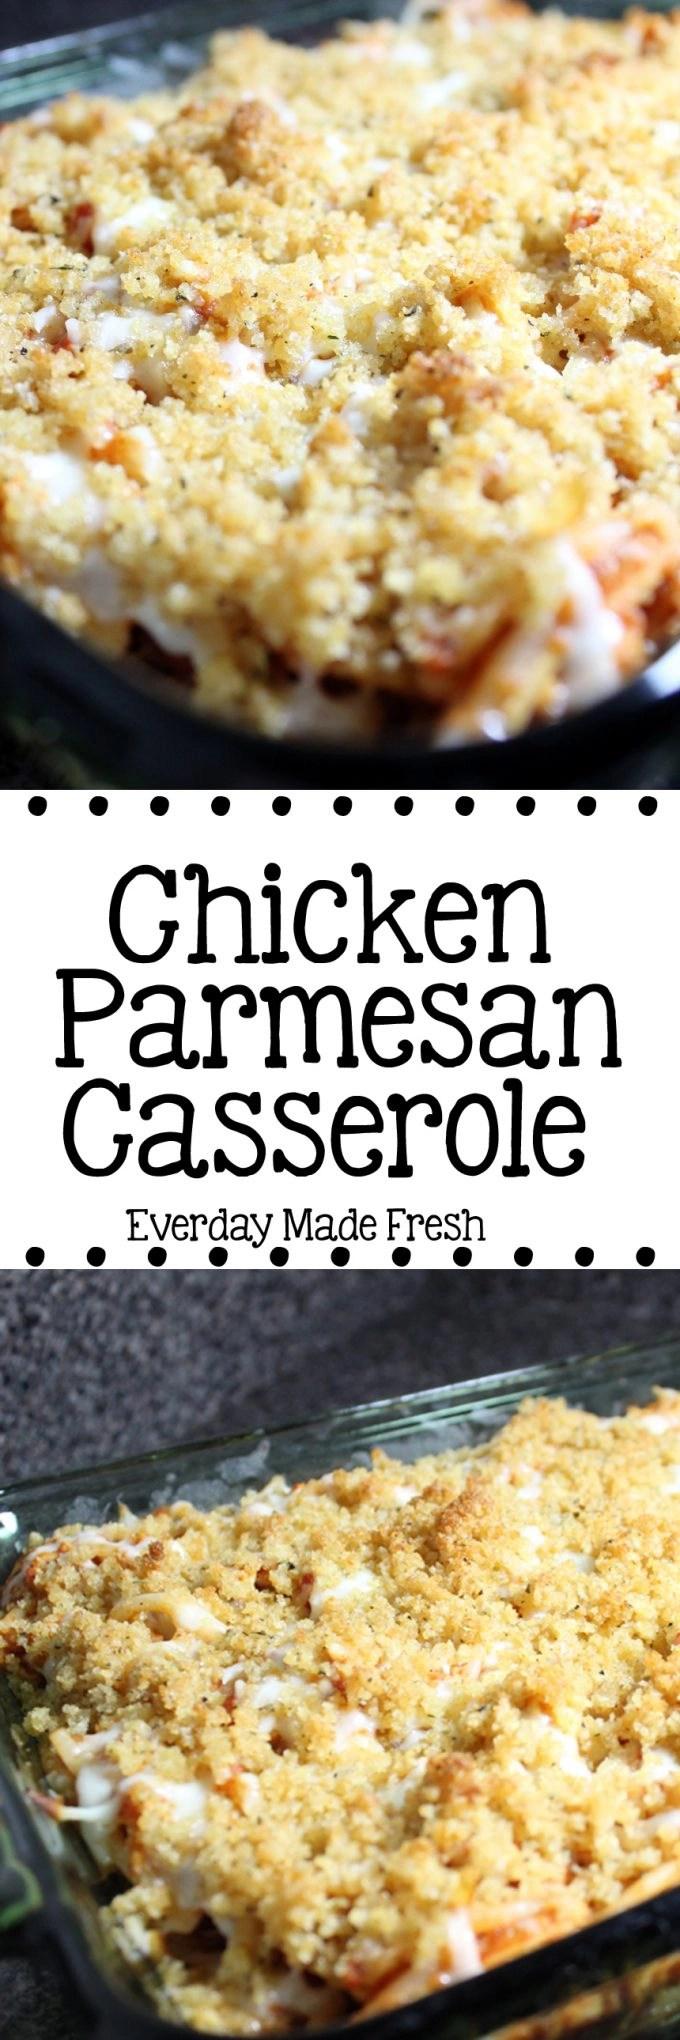 Chicken Parmesan Casserole takes one of our family's favorite Italian Dishes and turns it into a fantastic casserole form! | EverydayMadeFresh.com